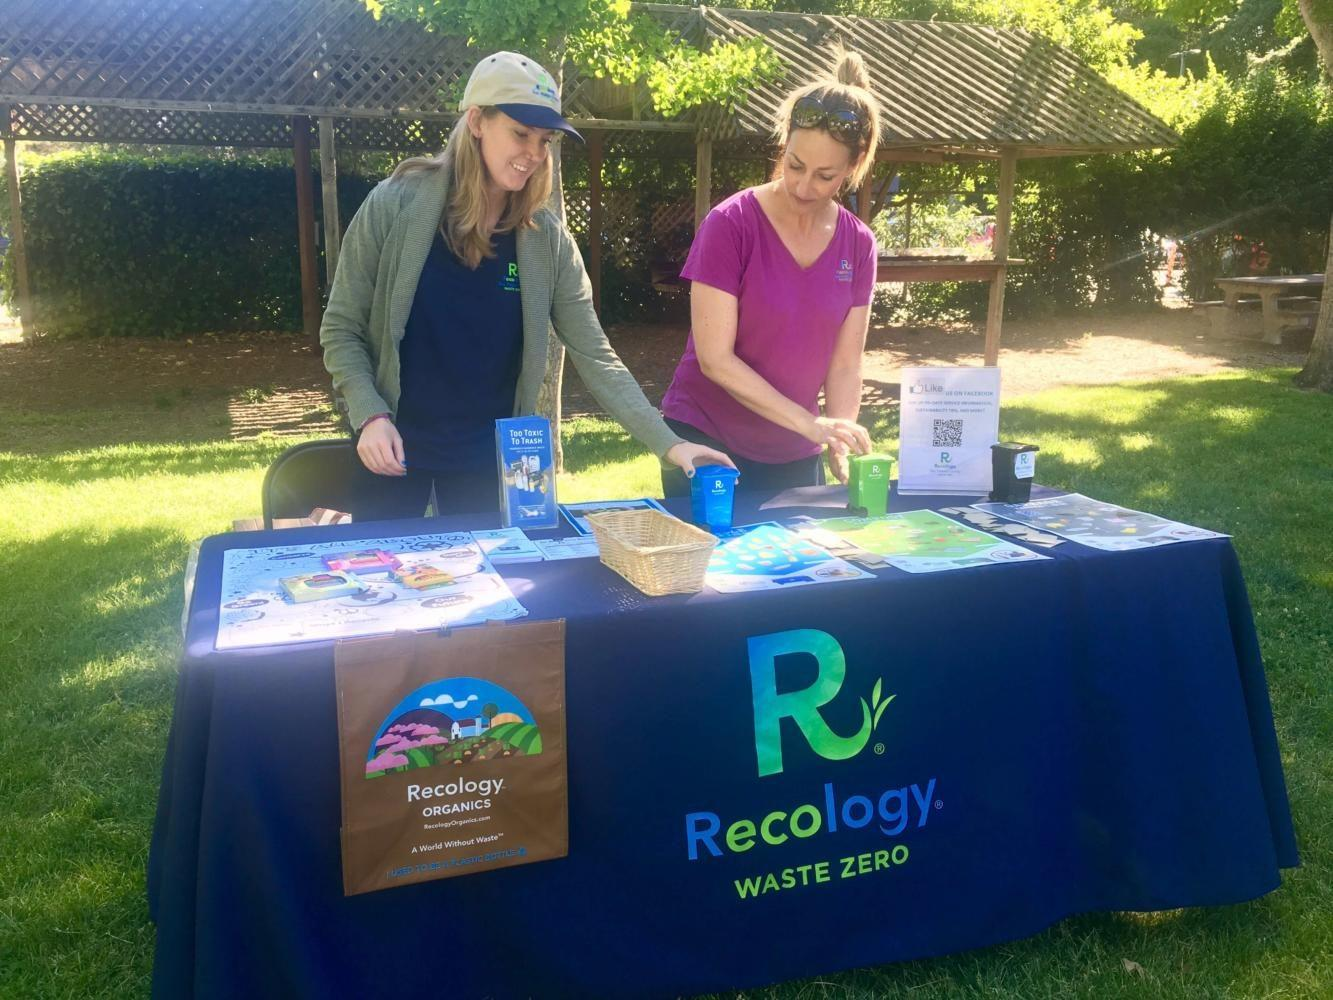 Gina+Tretten+and+Rachael+Lacey+from+Recology+wait+for+people+to+stop+by+their+booth.+%22I+hope+people+learn+something+new+about+what+materials+go+into+garbage%2C+recycling%2C+and+compost+bins%2C%22+said+Lacey.